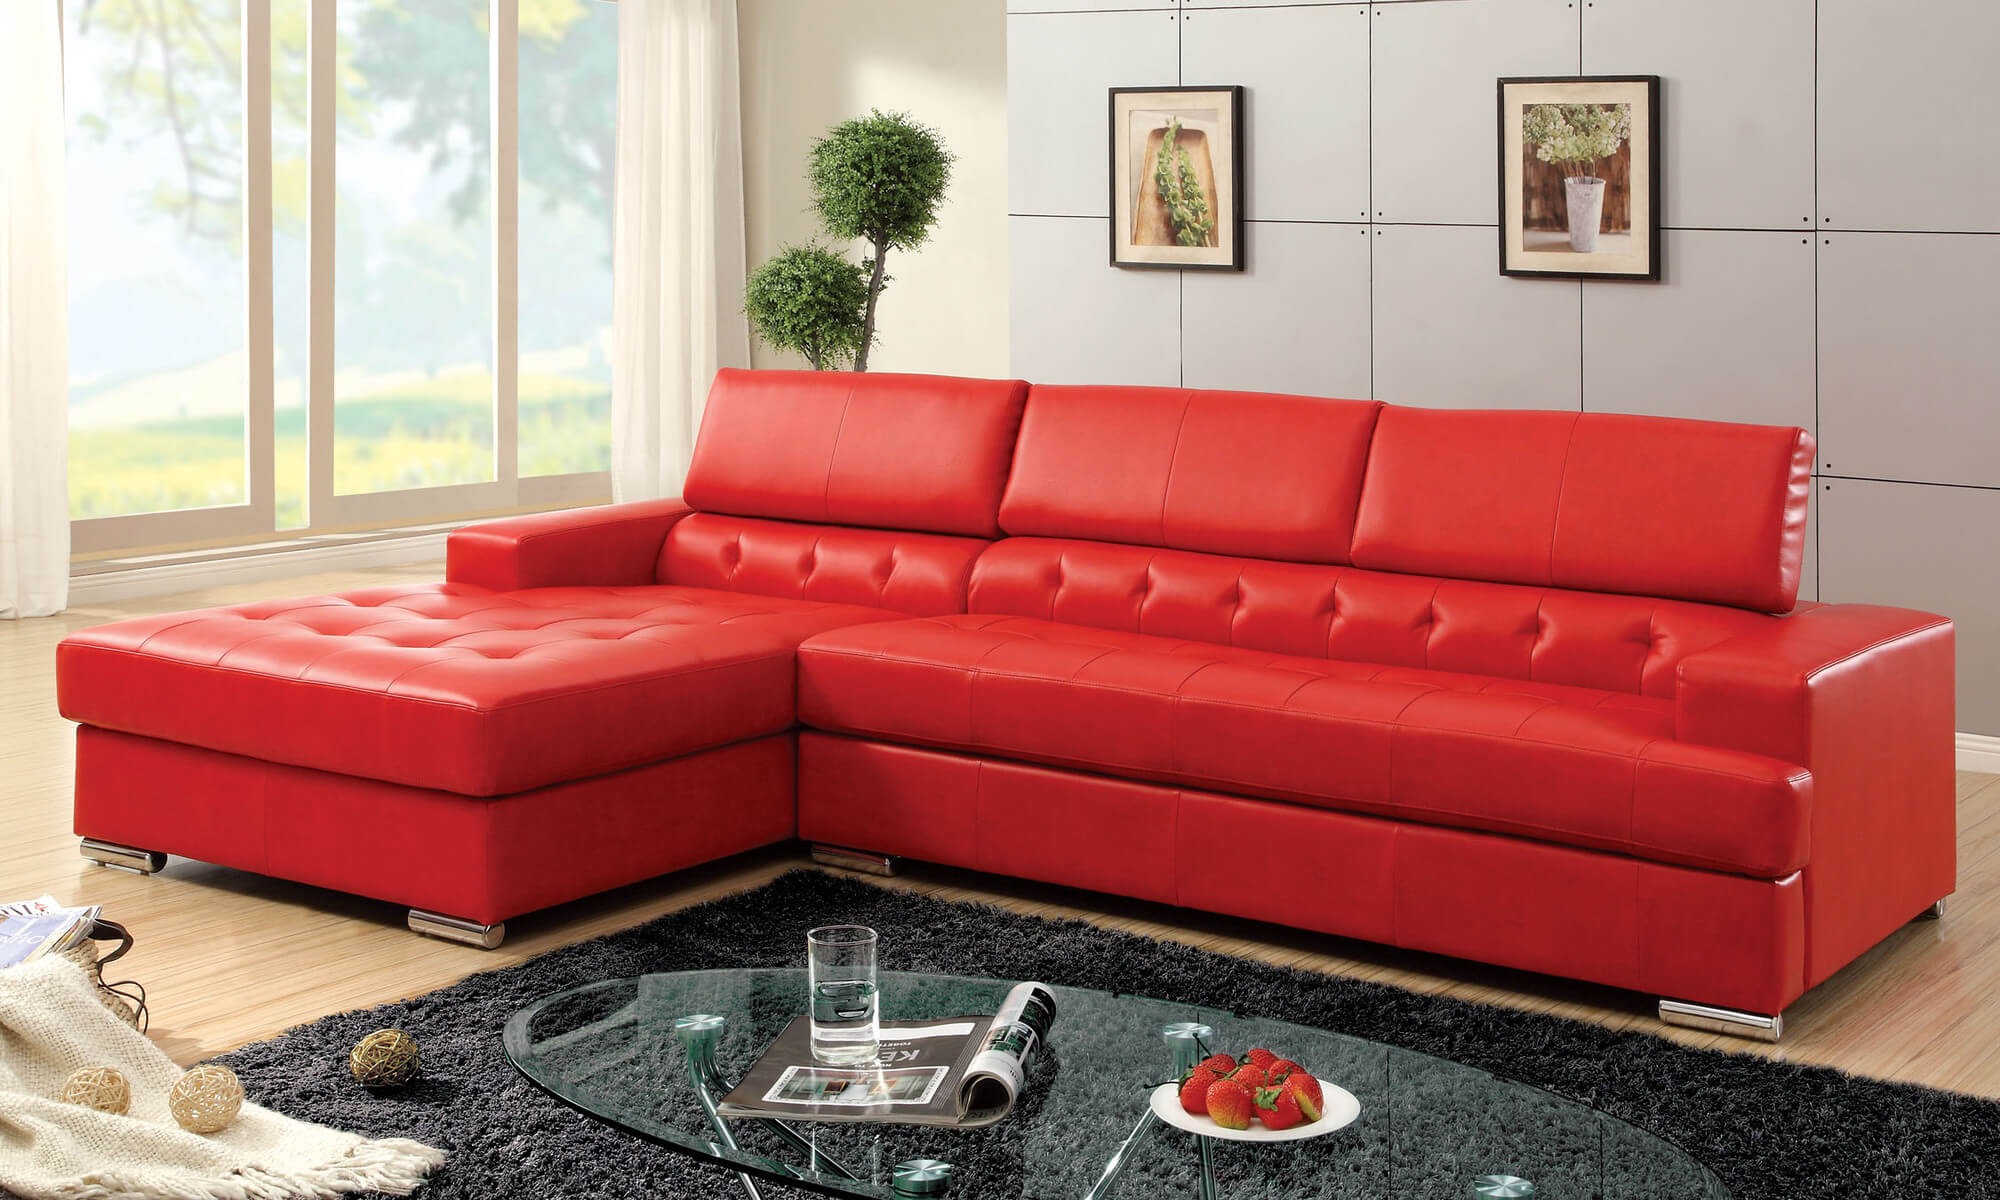 Add some unique style with a red couch